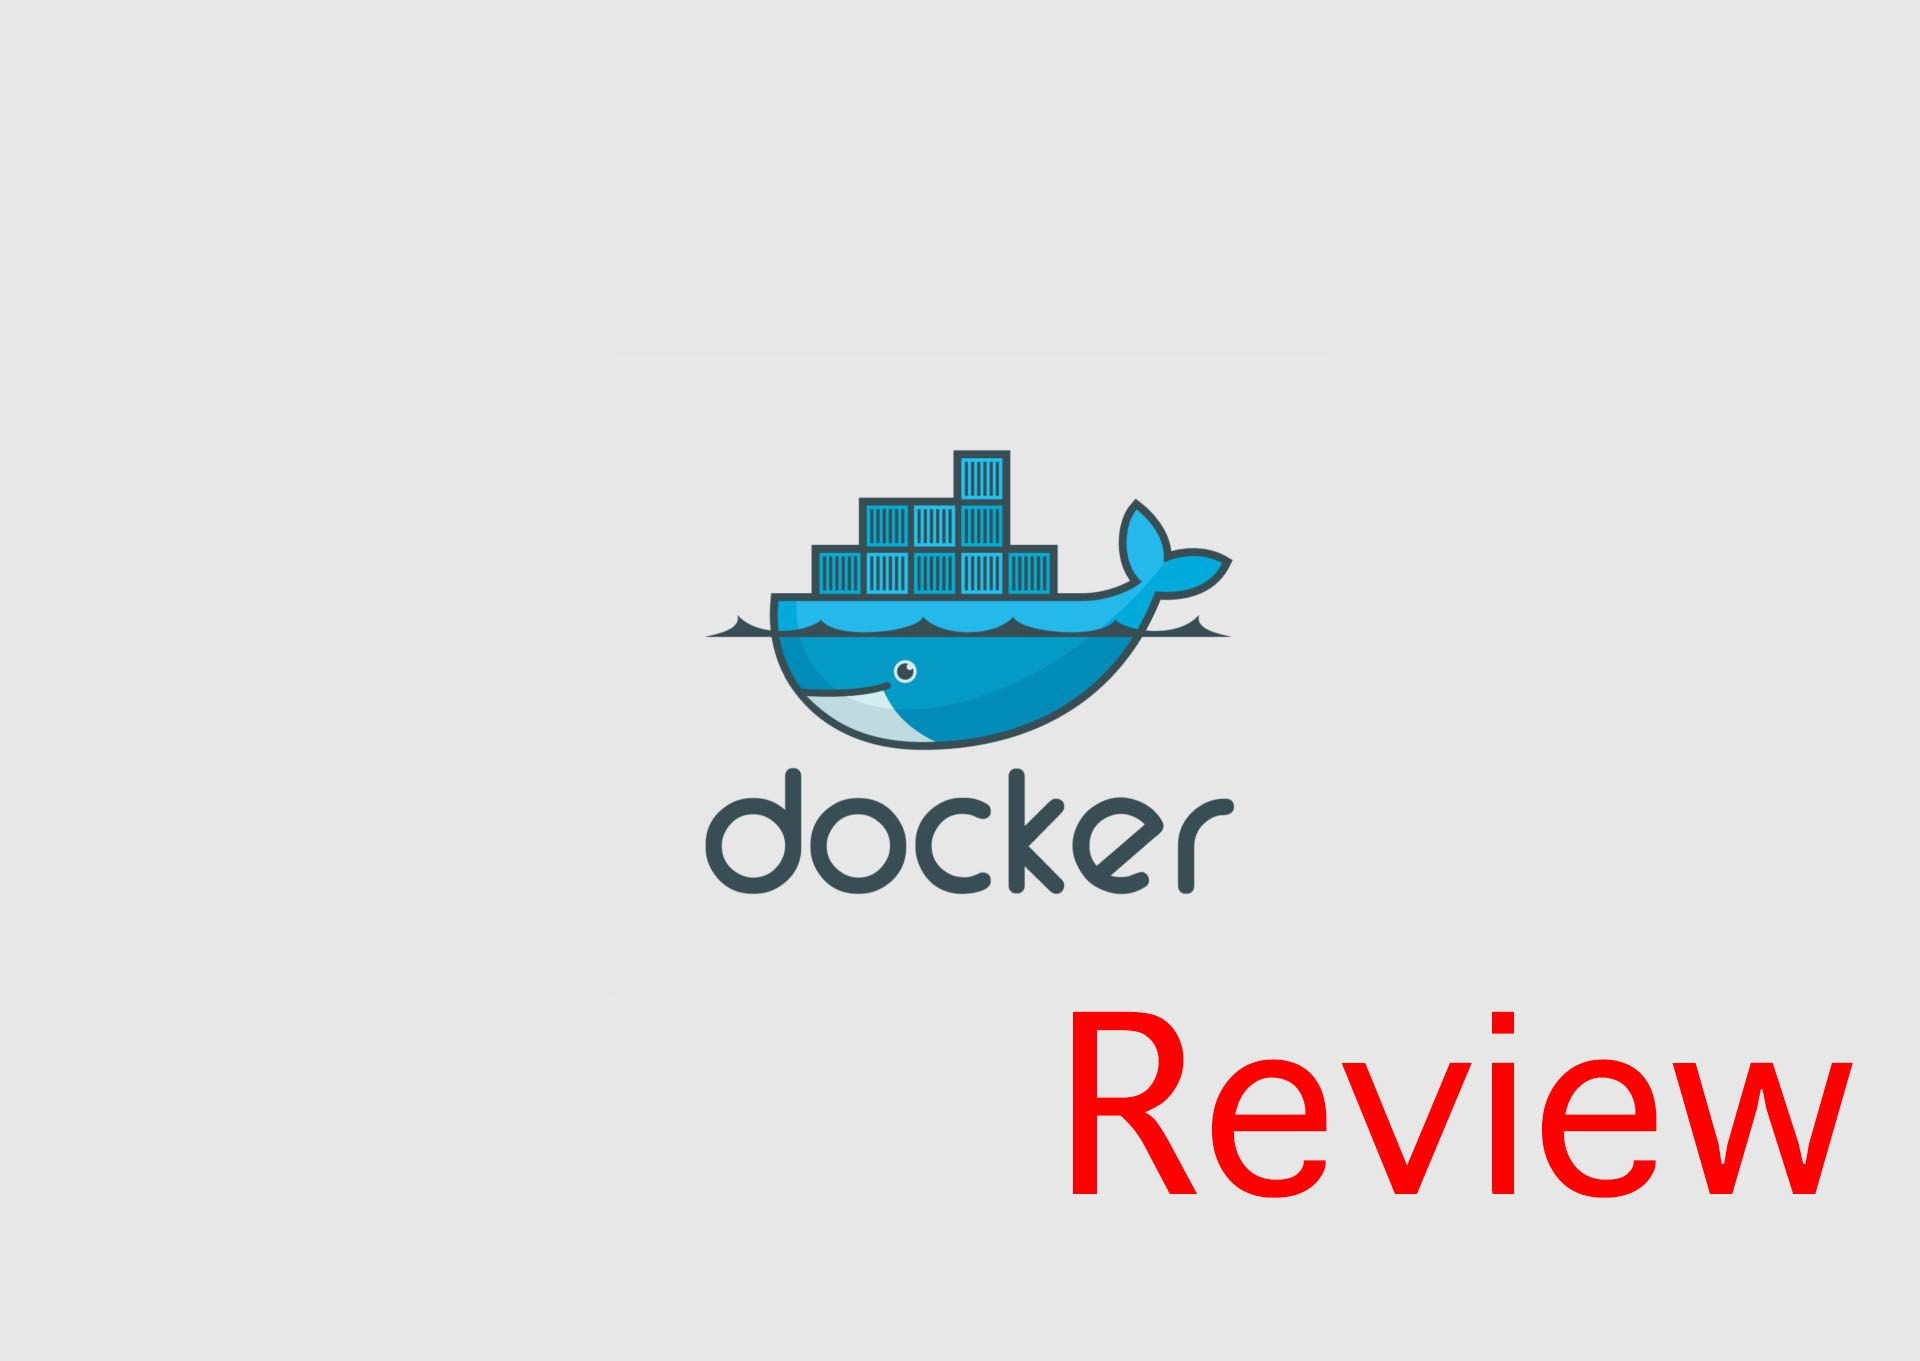 Why use docker? (Review)